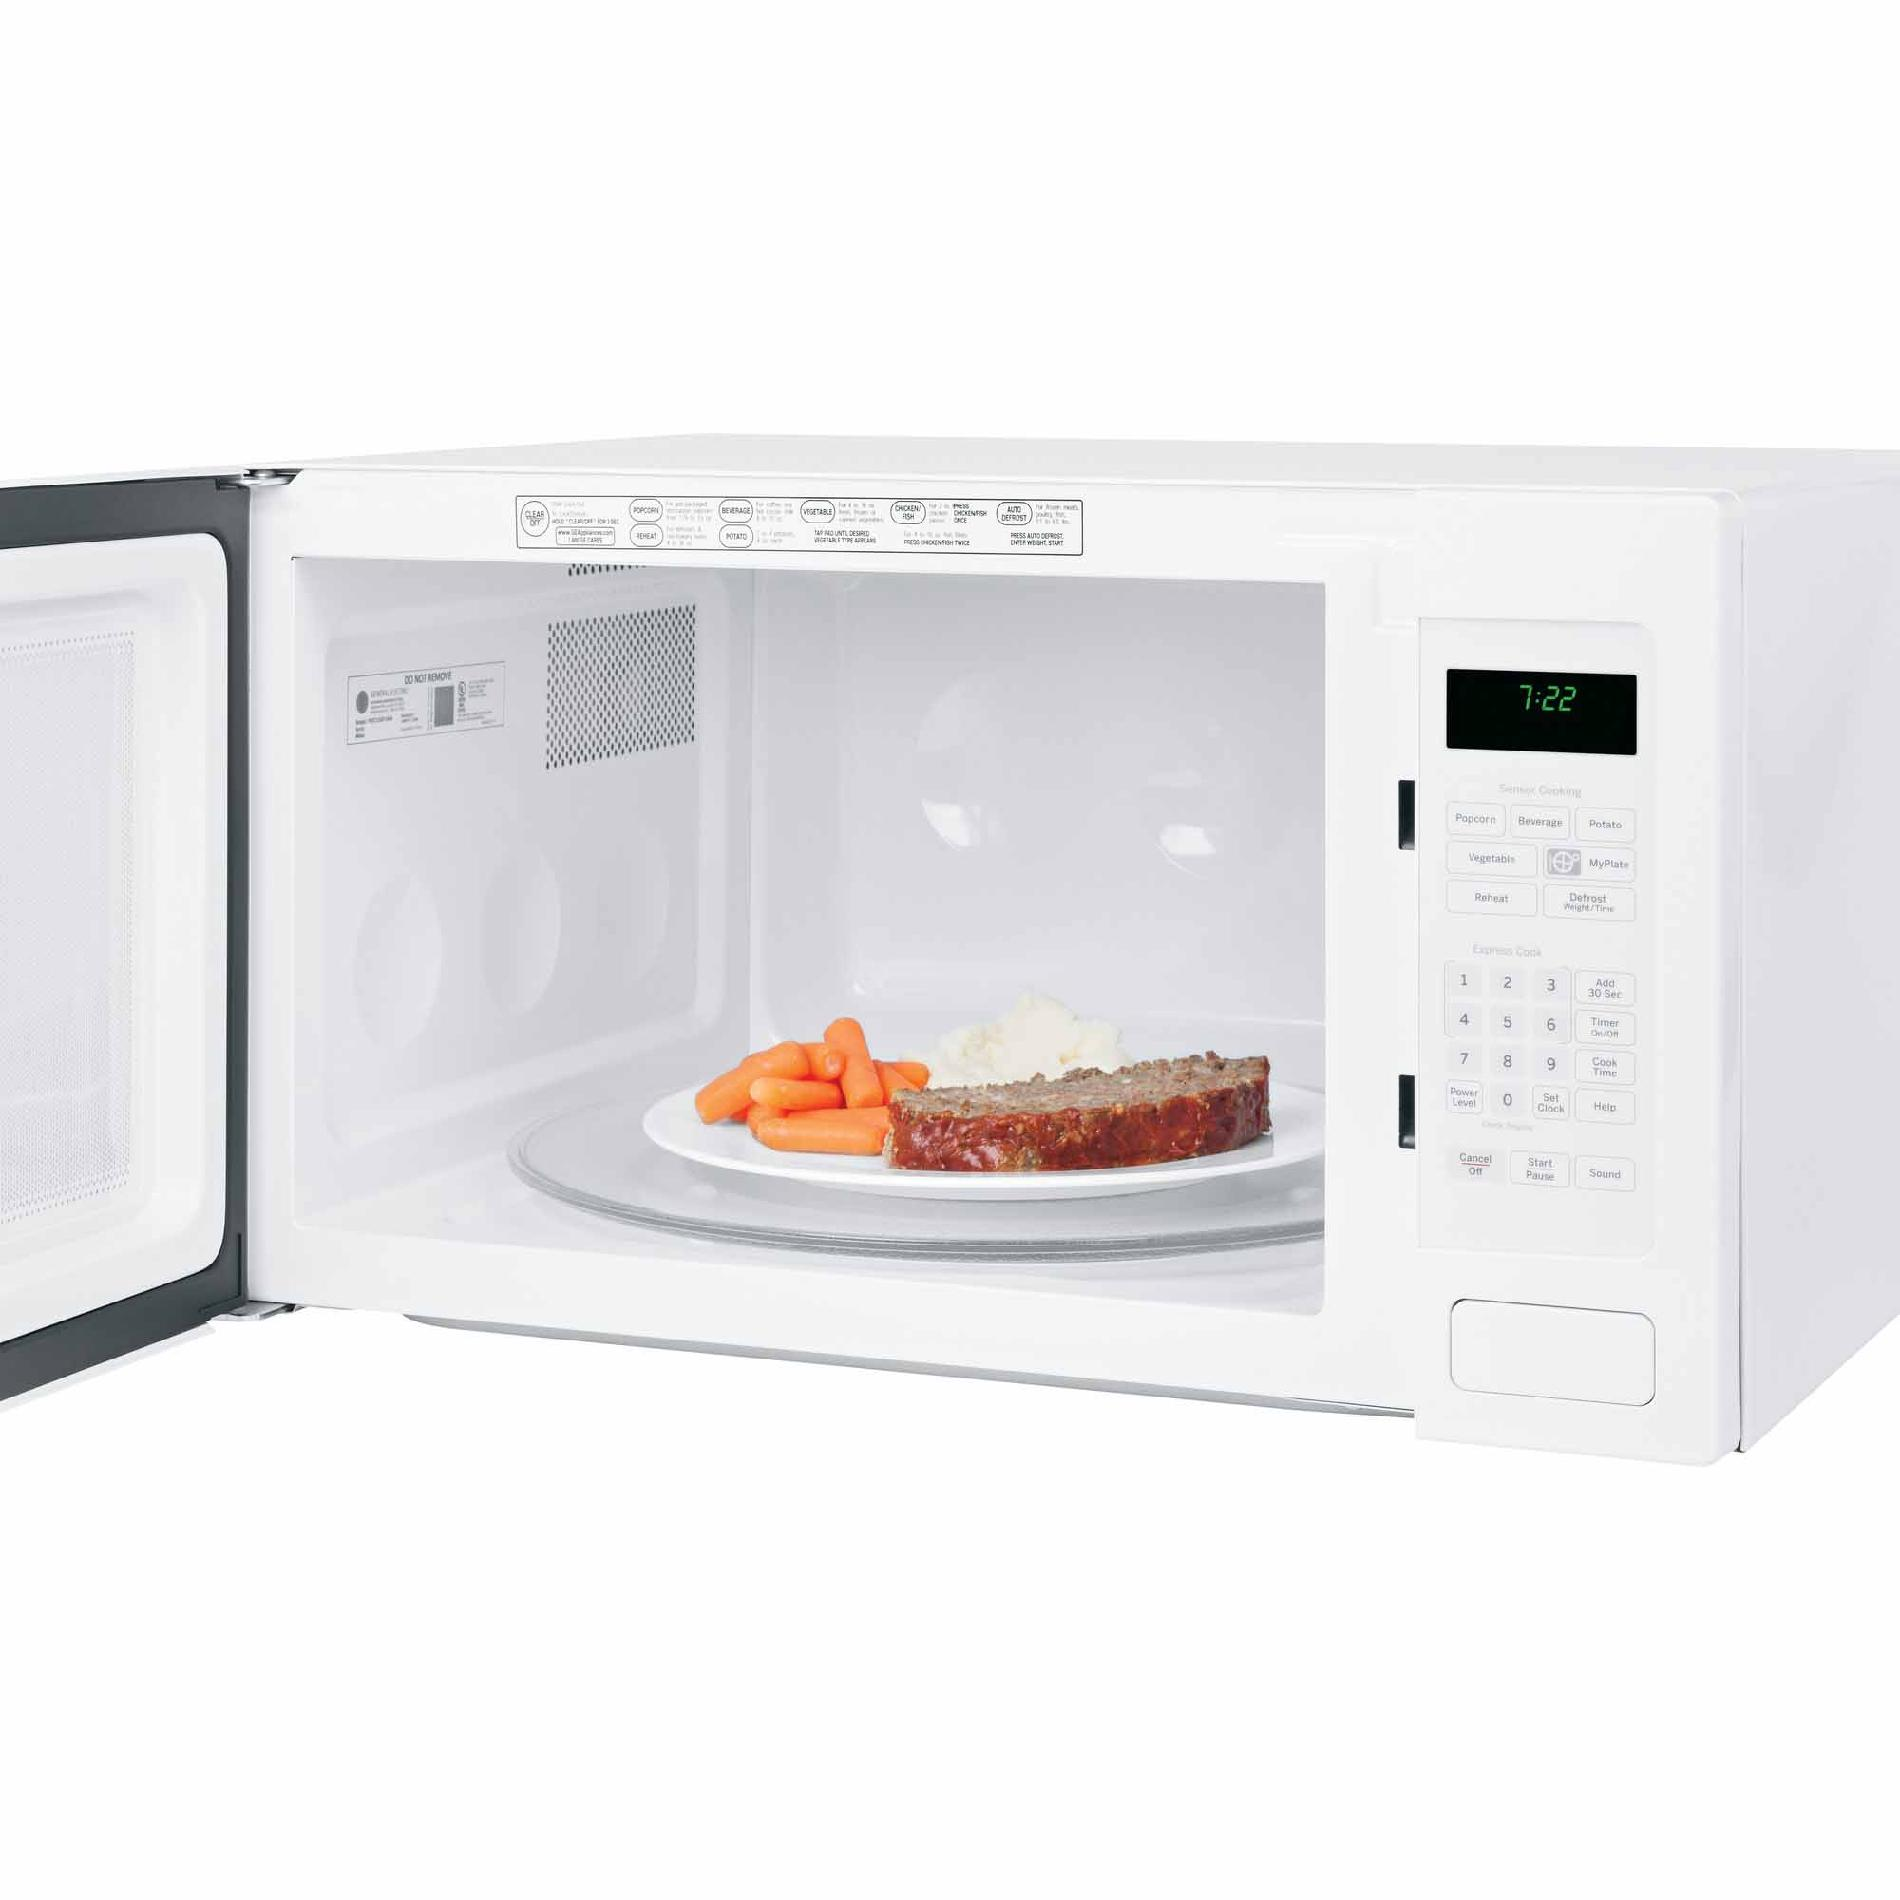 GE Appliances PEB7226DFWW 2.2 cu. ft. Countertop Microwave Oven - White PEB7226DFWW